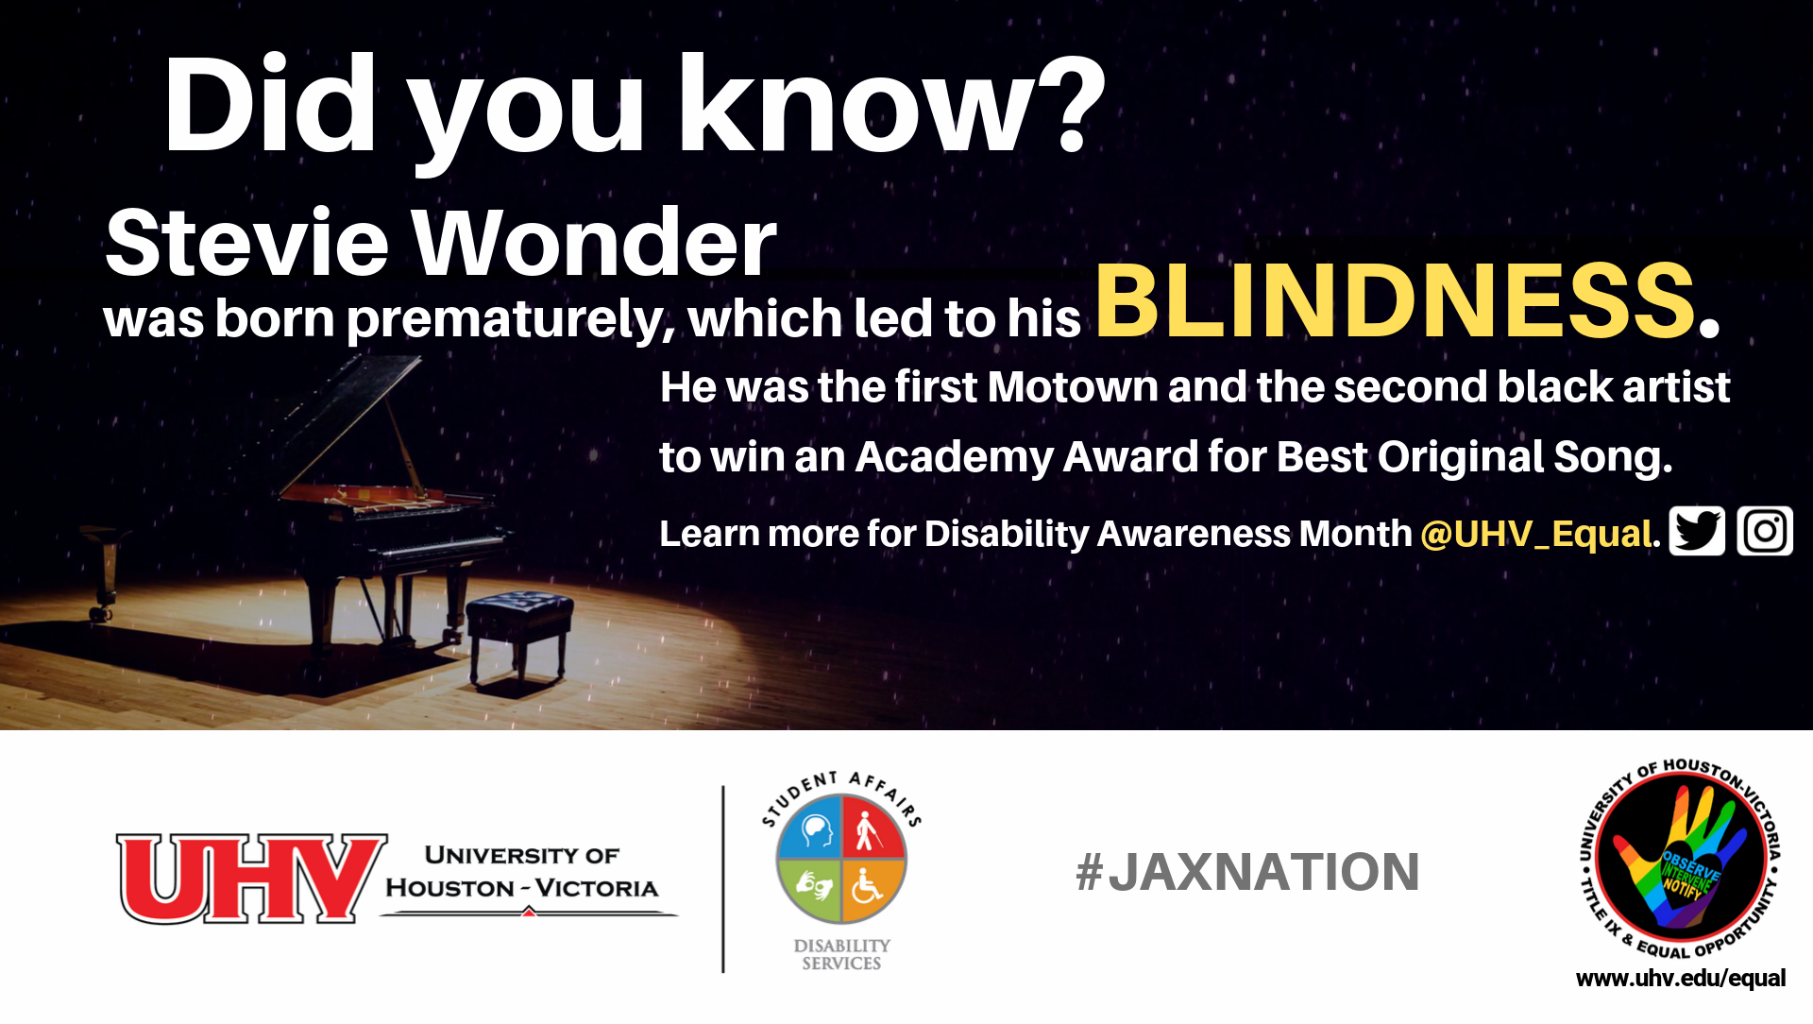 Did you know? Stevie Wonder was born prematurely, which led to his blindness. He was the first Motown and the second black artist to win an Academy Award for Best Original Song. Piano image. UHV Disability Services Logo. Learn more for Disability Awareness Month @UHV_Equal.#jaxnation. University of Houston-Victoria Title IX and Equal Opportunity Logo (rainbow hand with heart insert with words Obse